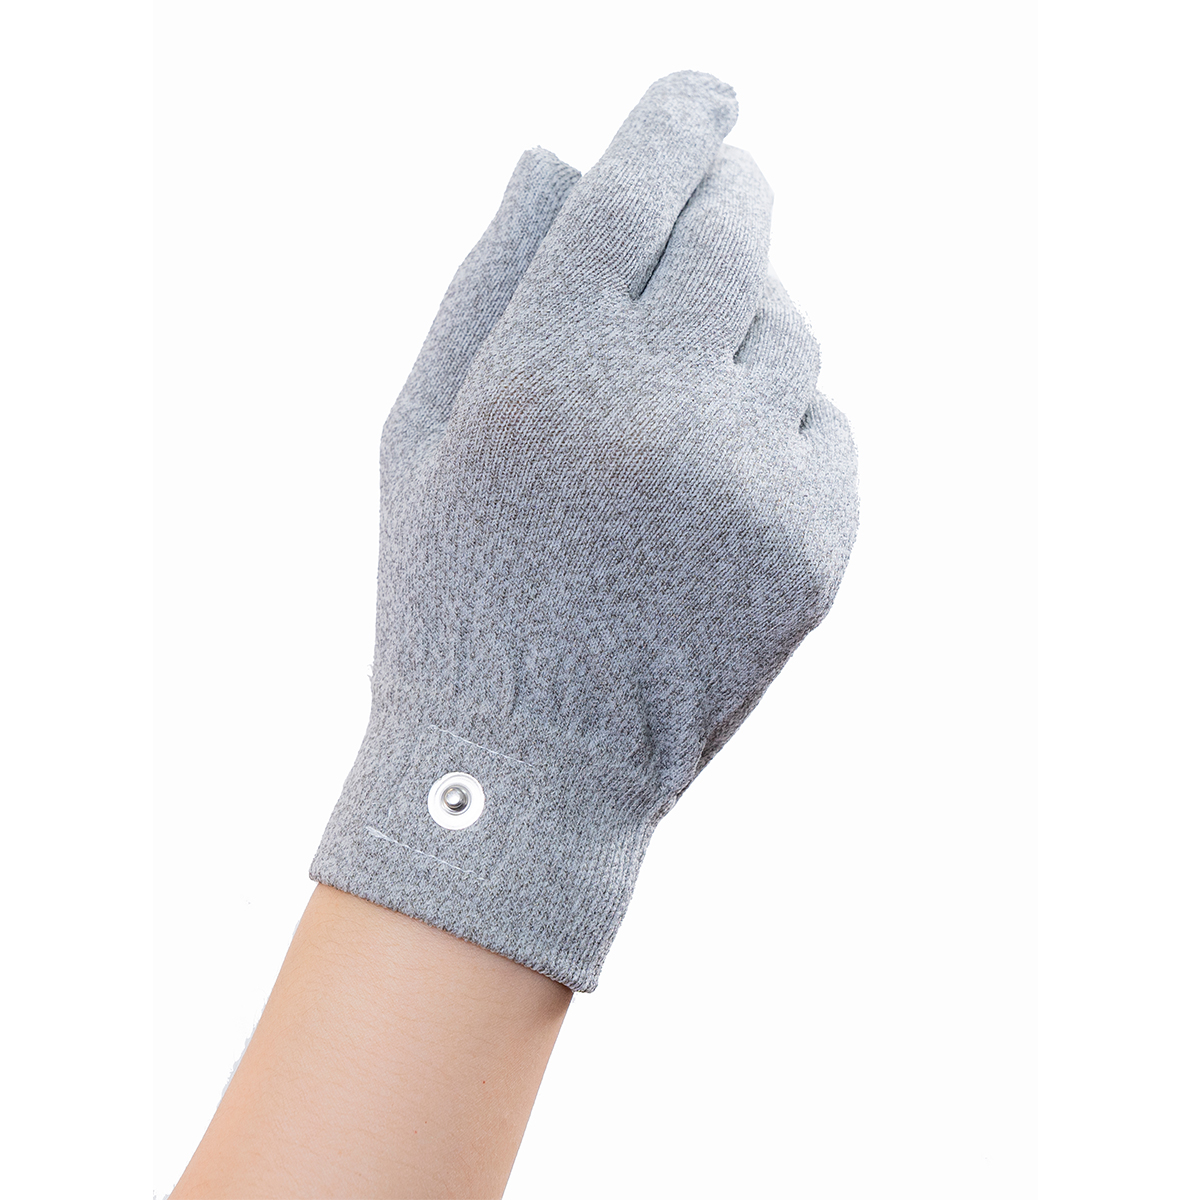 Conductive Gloves & Socks